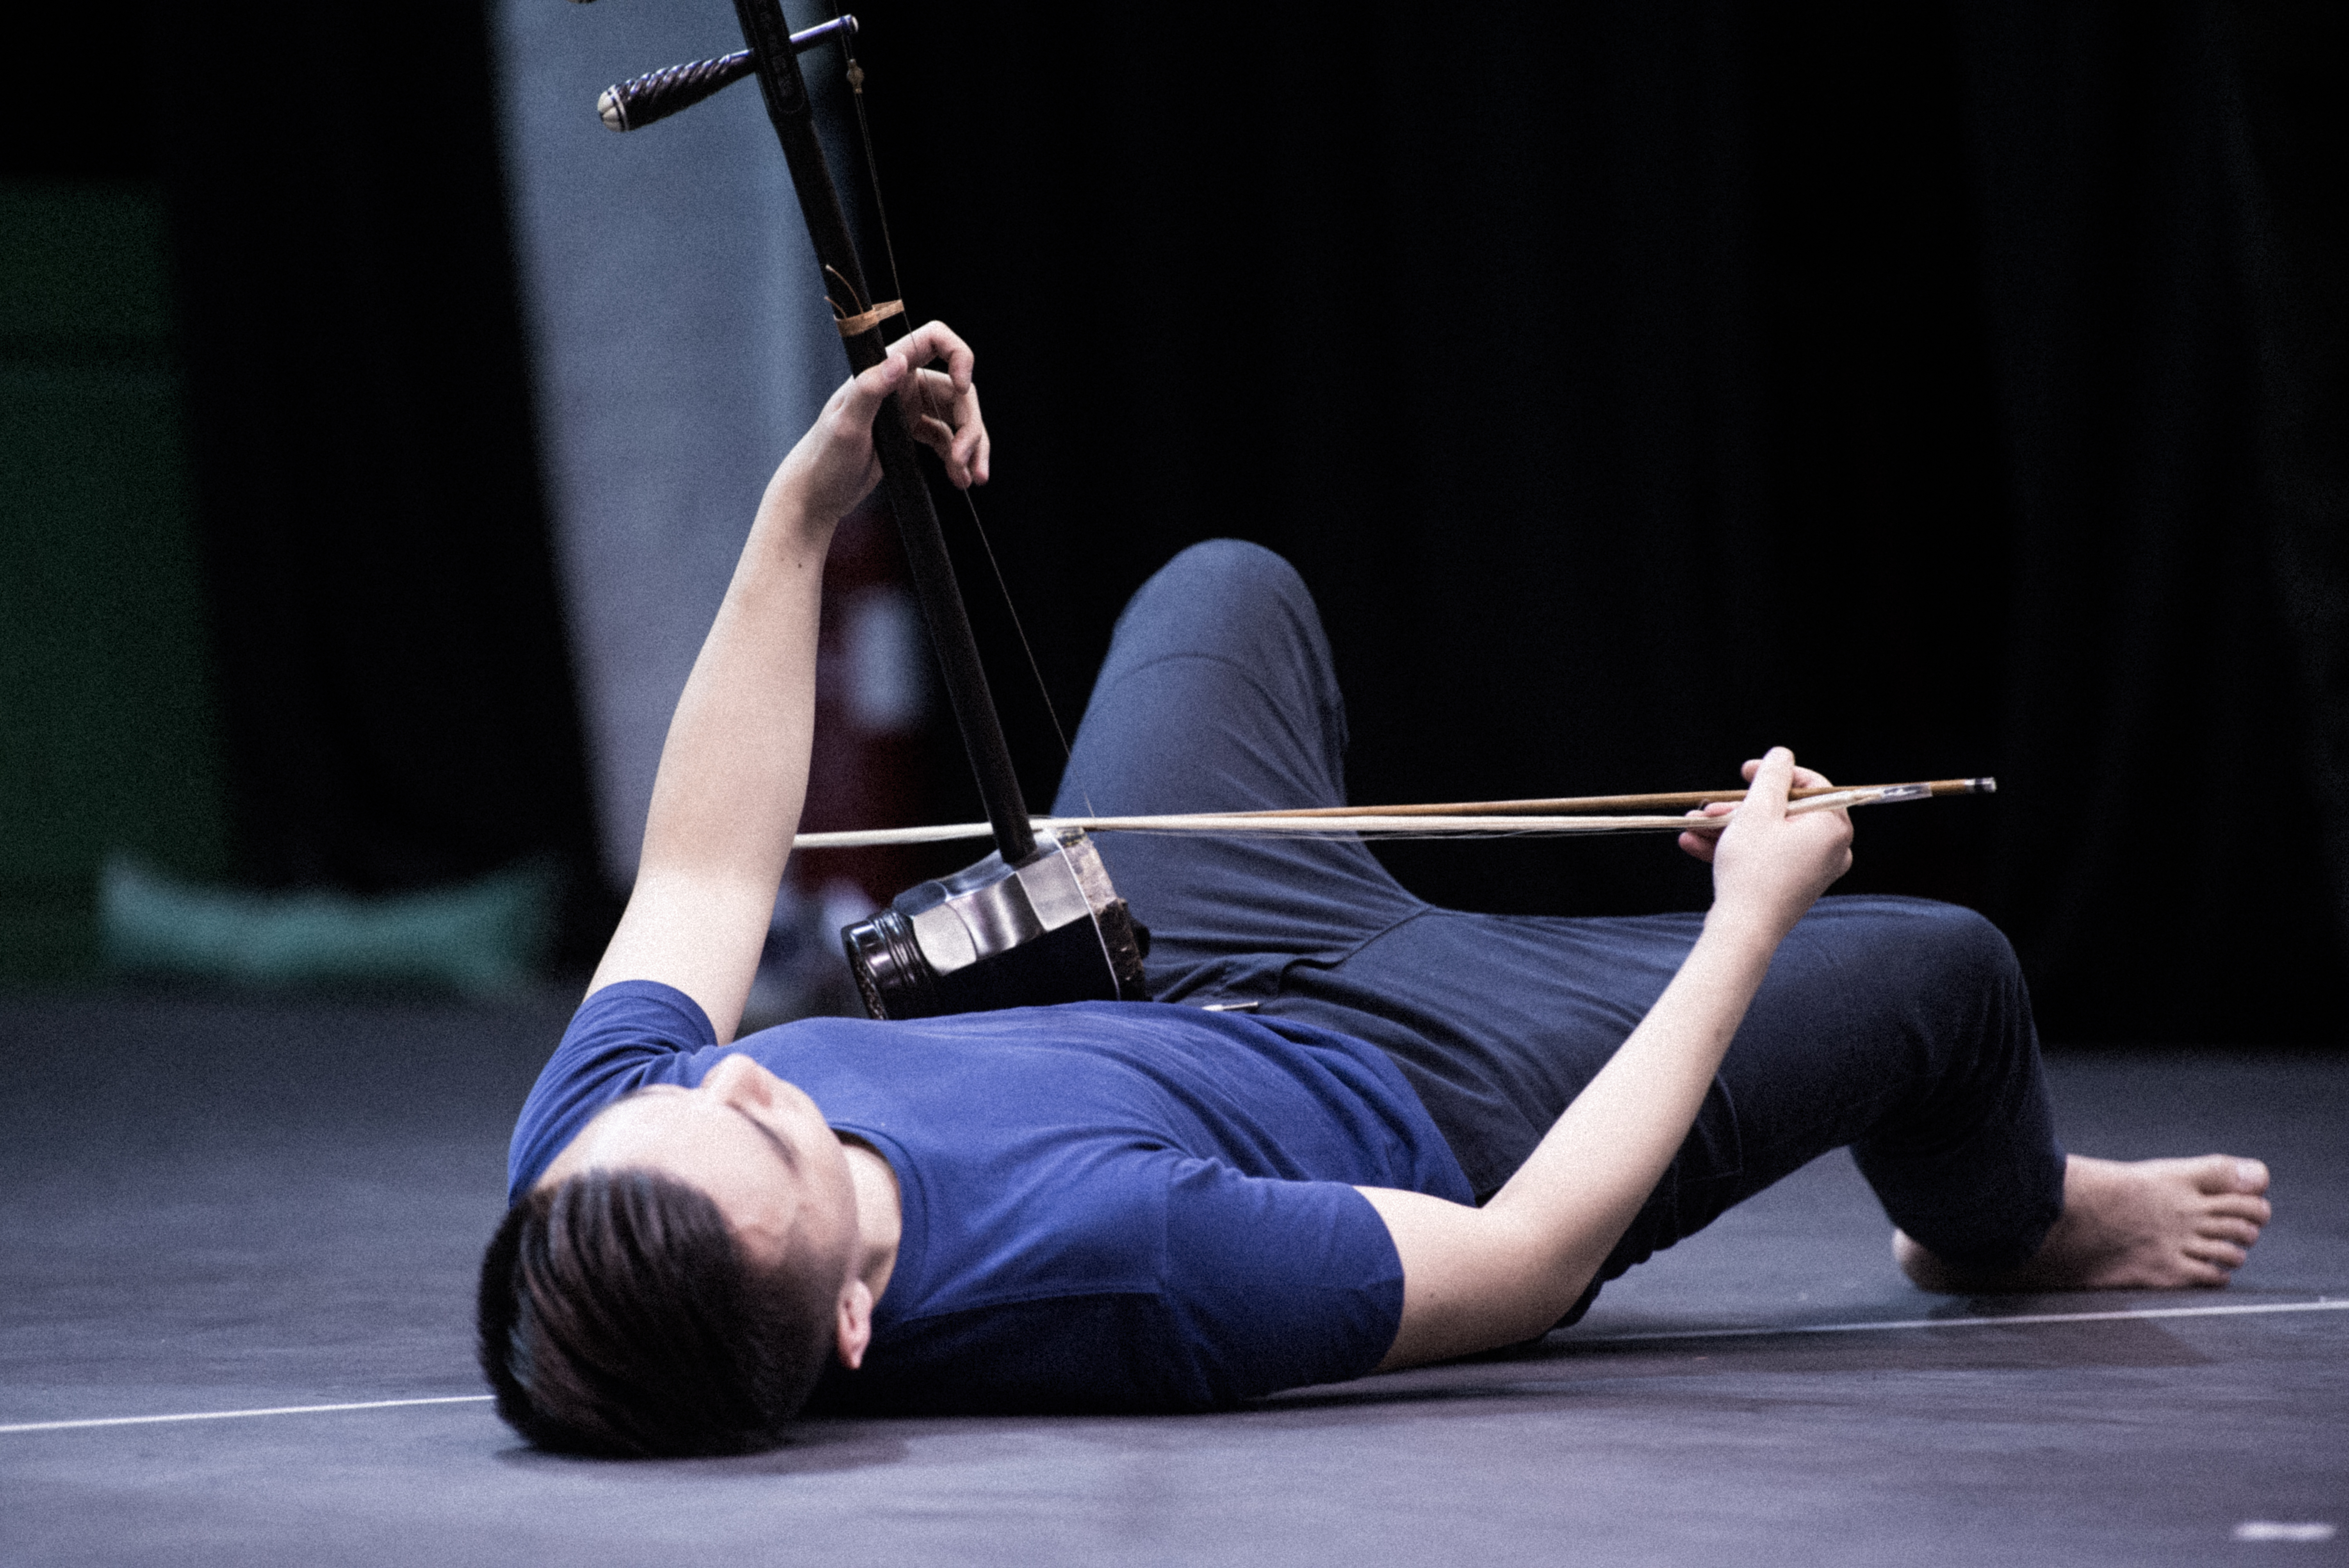 It is a big challenge for the performers in <i>Journey to the West Rewind</i> to simultaneously attend to acting, playing their instruments and physical movement